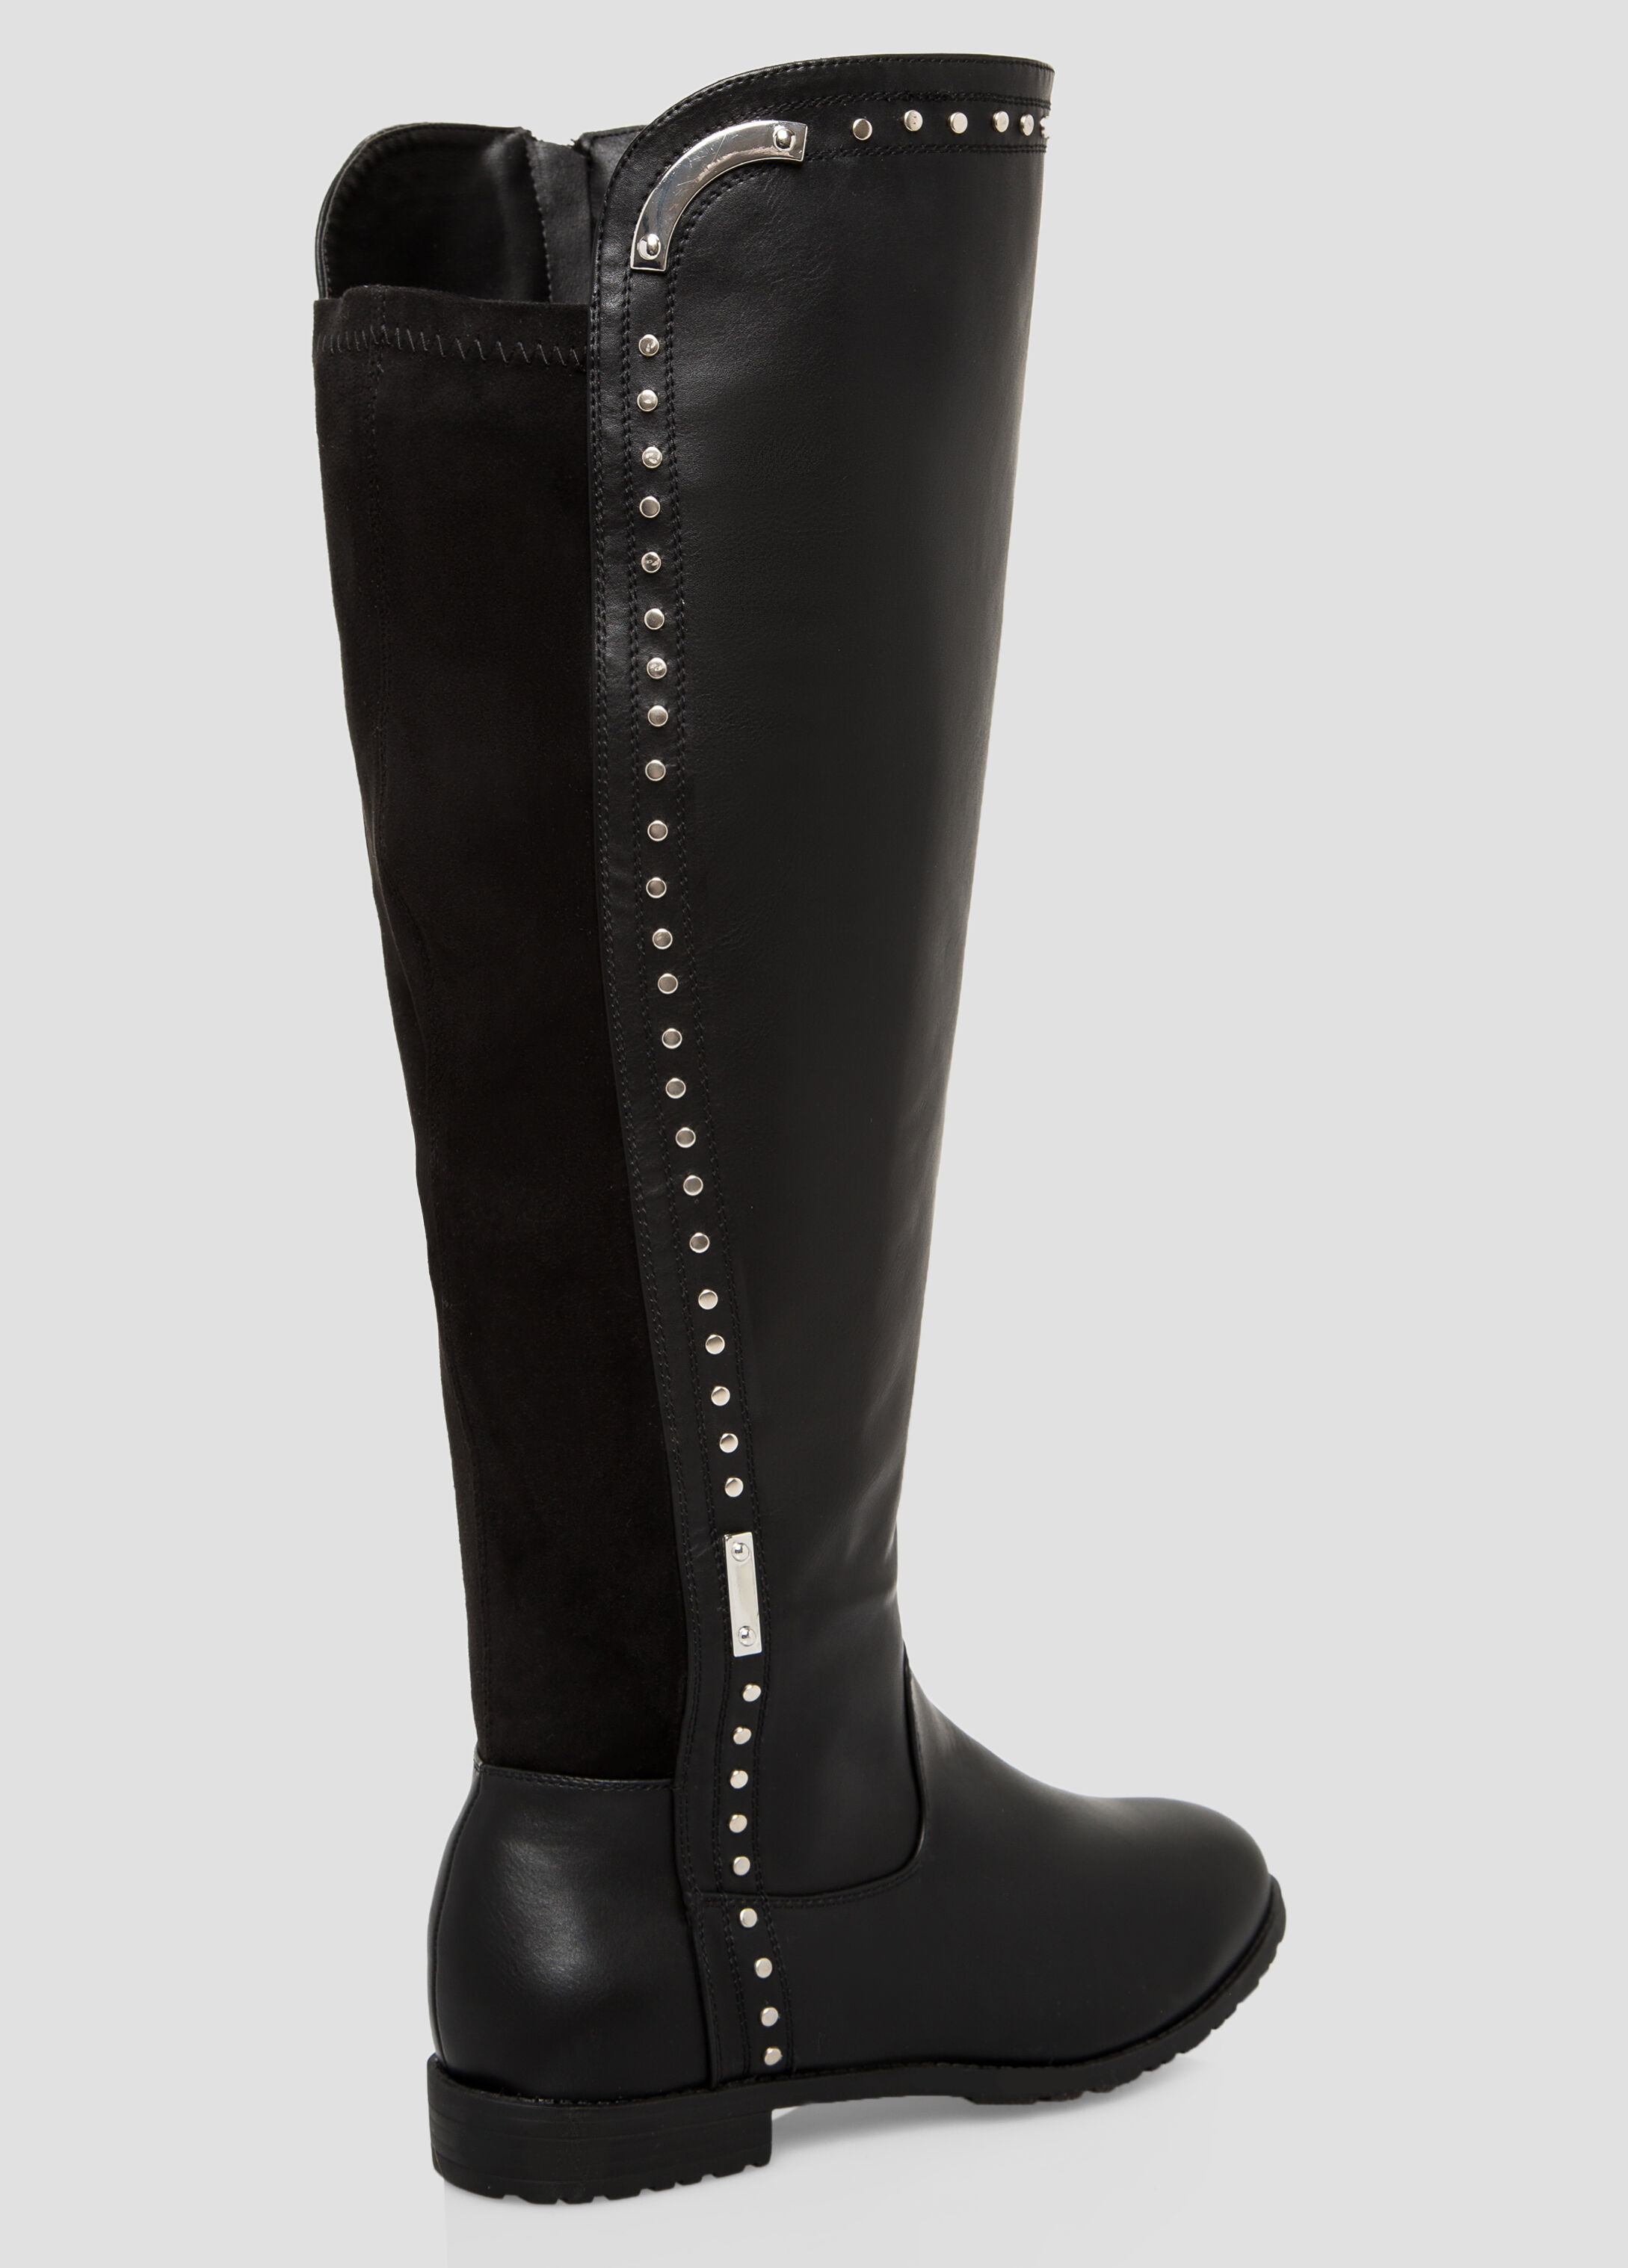 Black Boot Wide Calf Tall